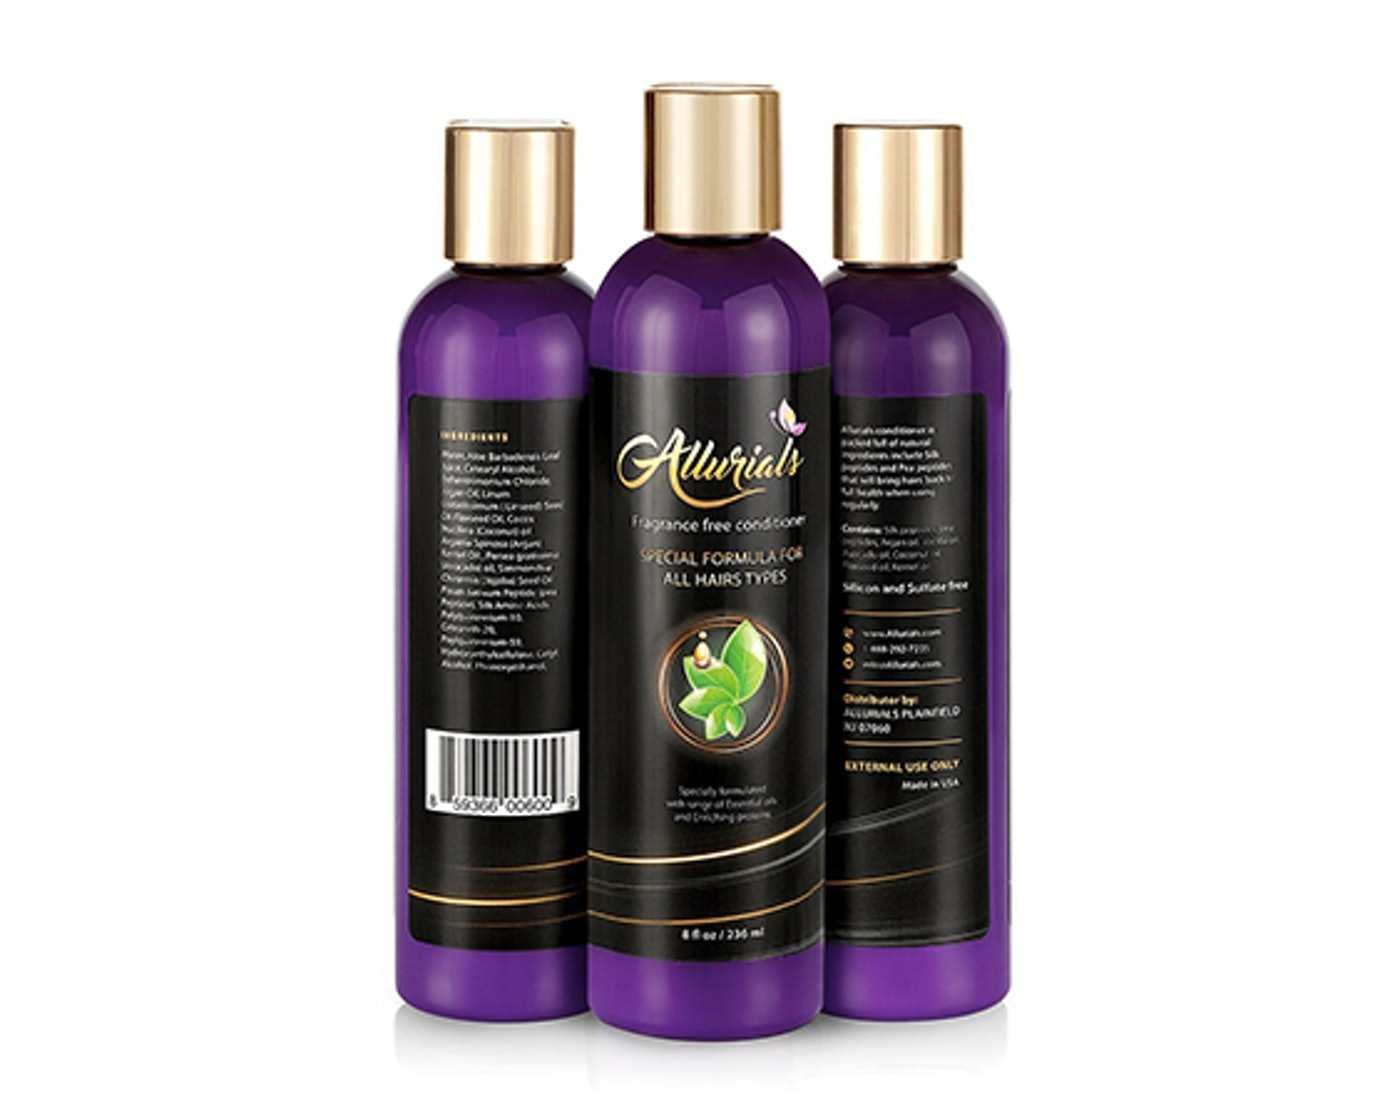 The 10 Best Sulfate Free Shampoos And Conditioners For Curly Hair